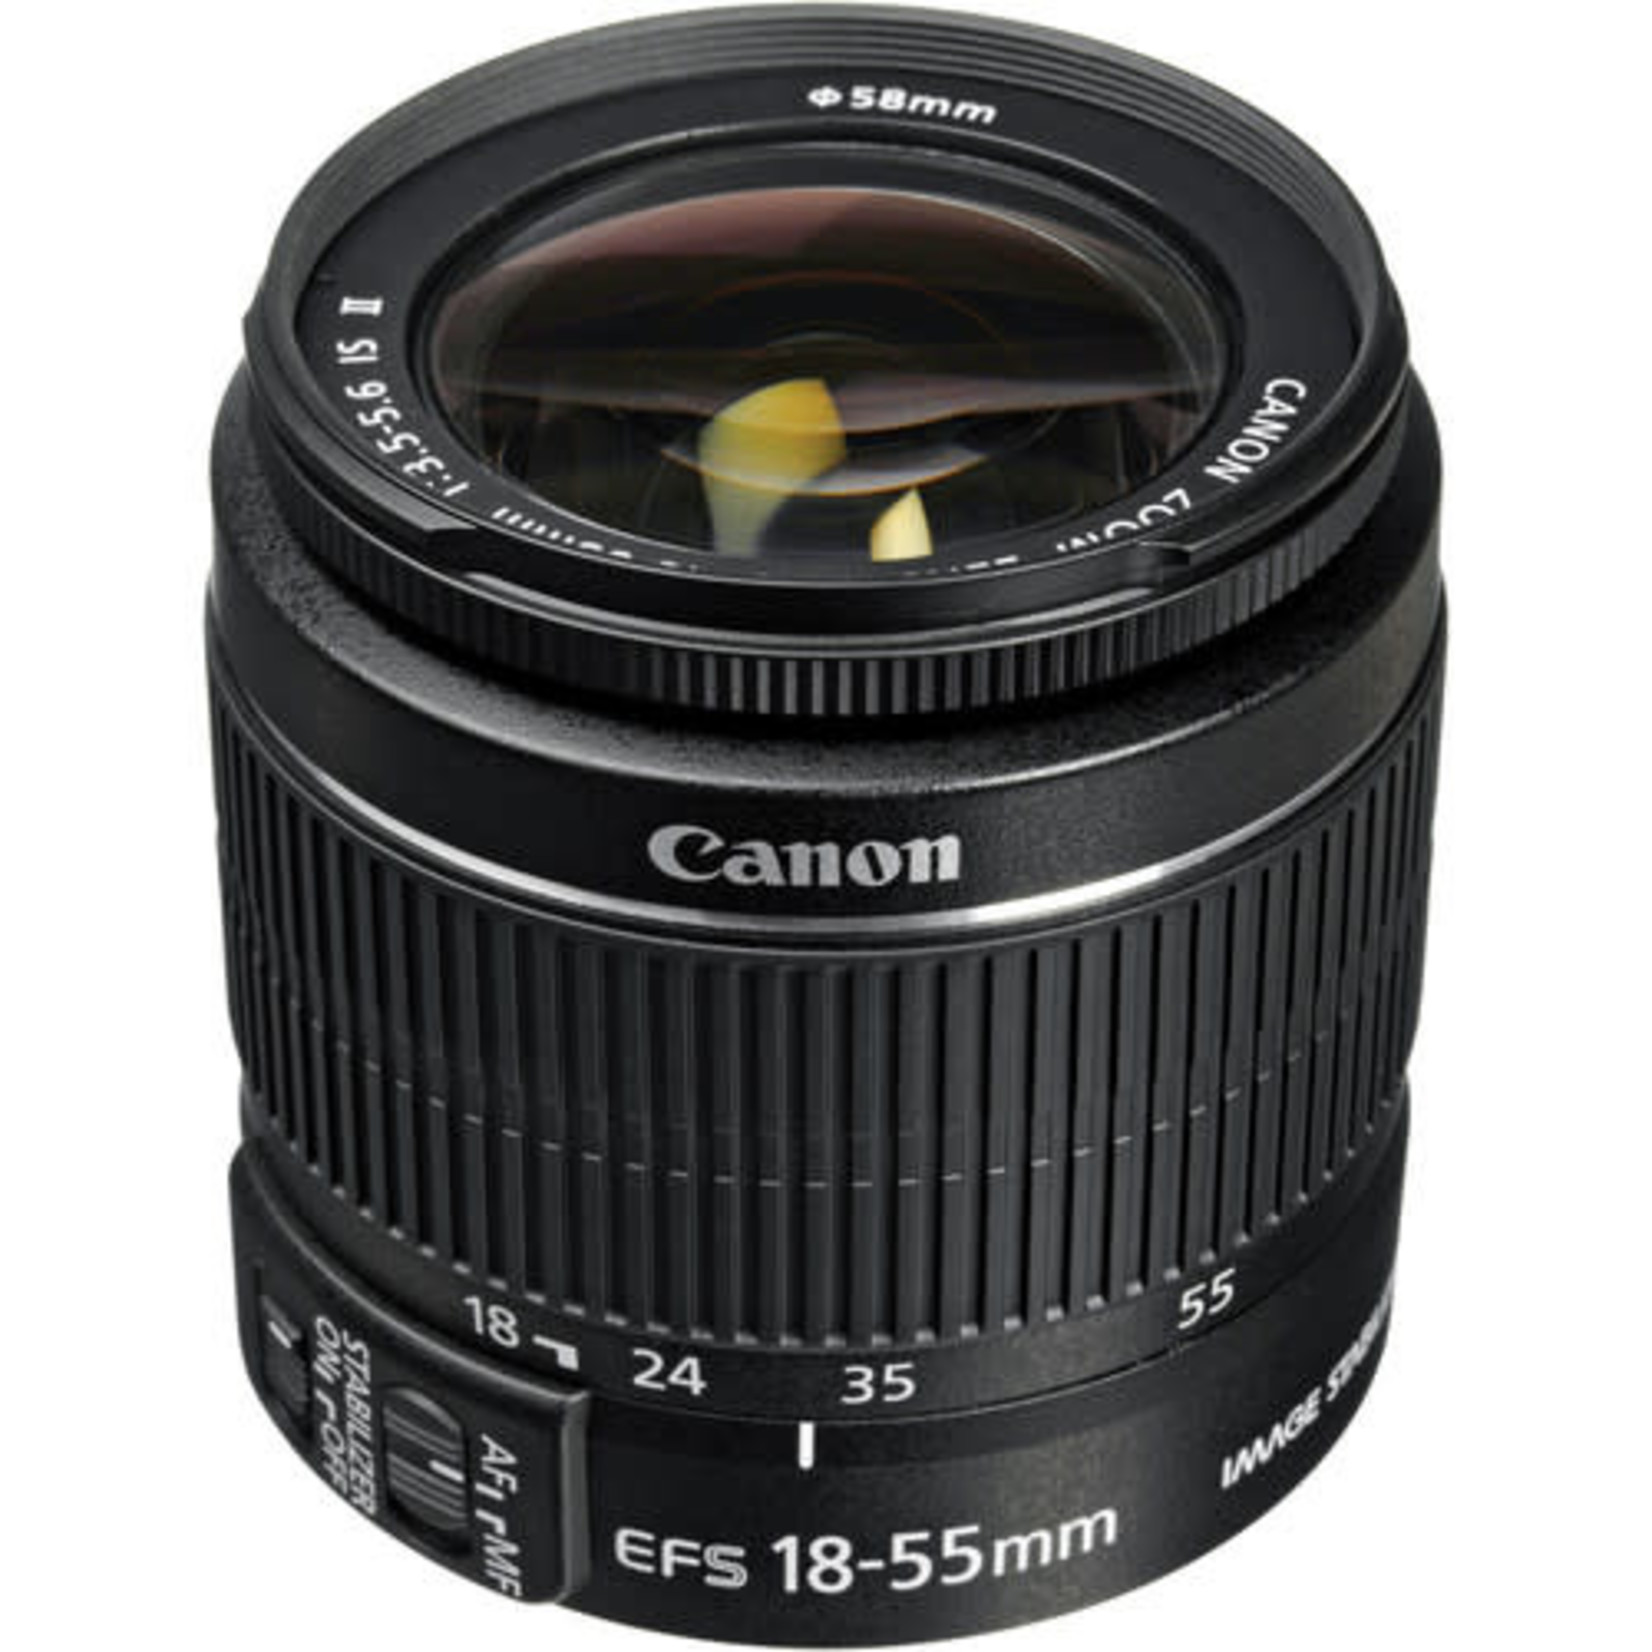 Canon Canon EF-S 18-55mm f/3.5-5.6 IS II Lens